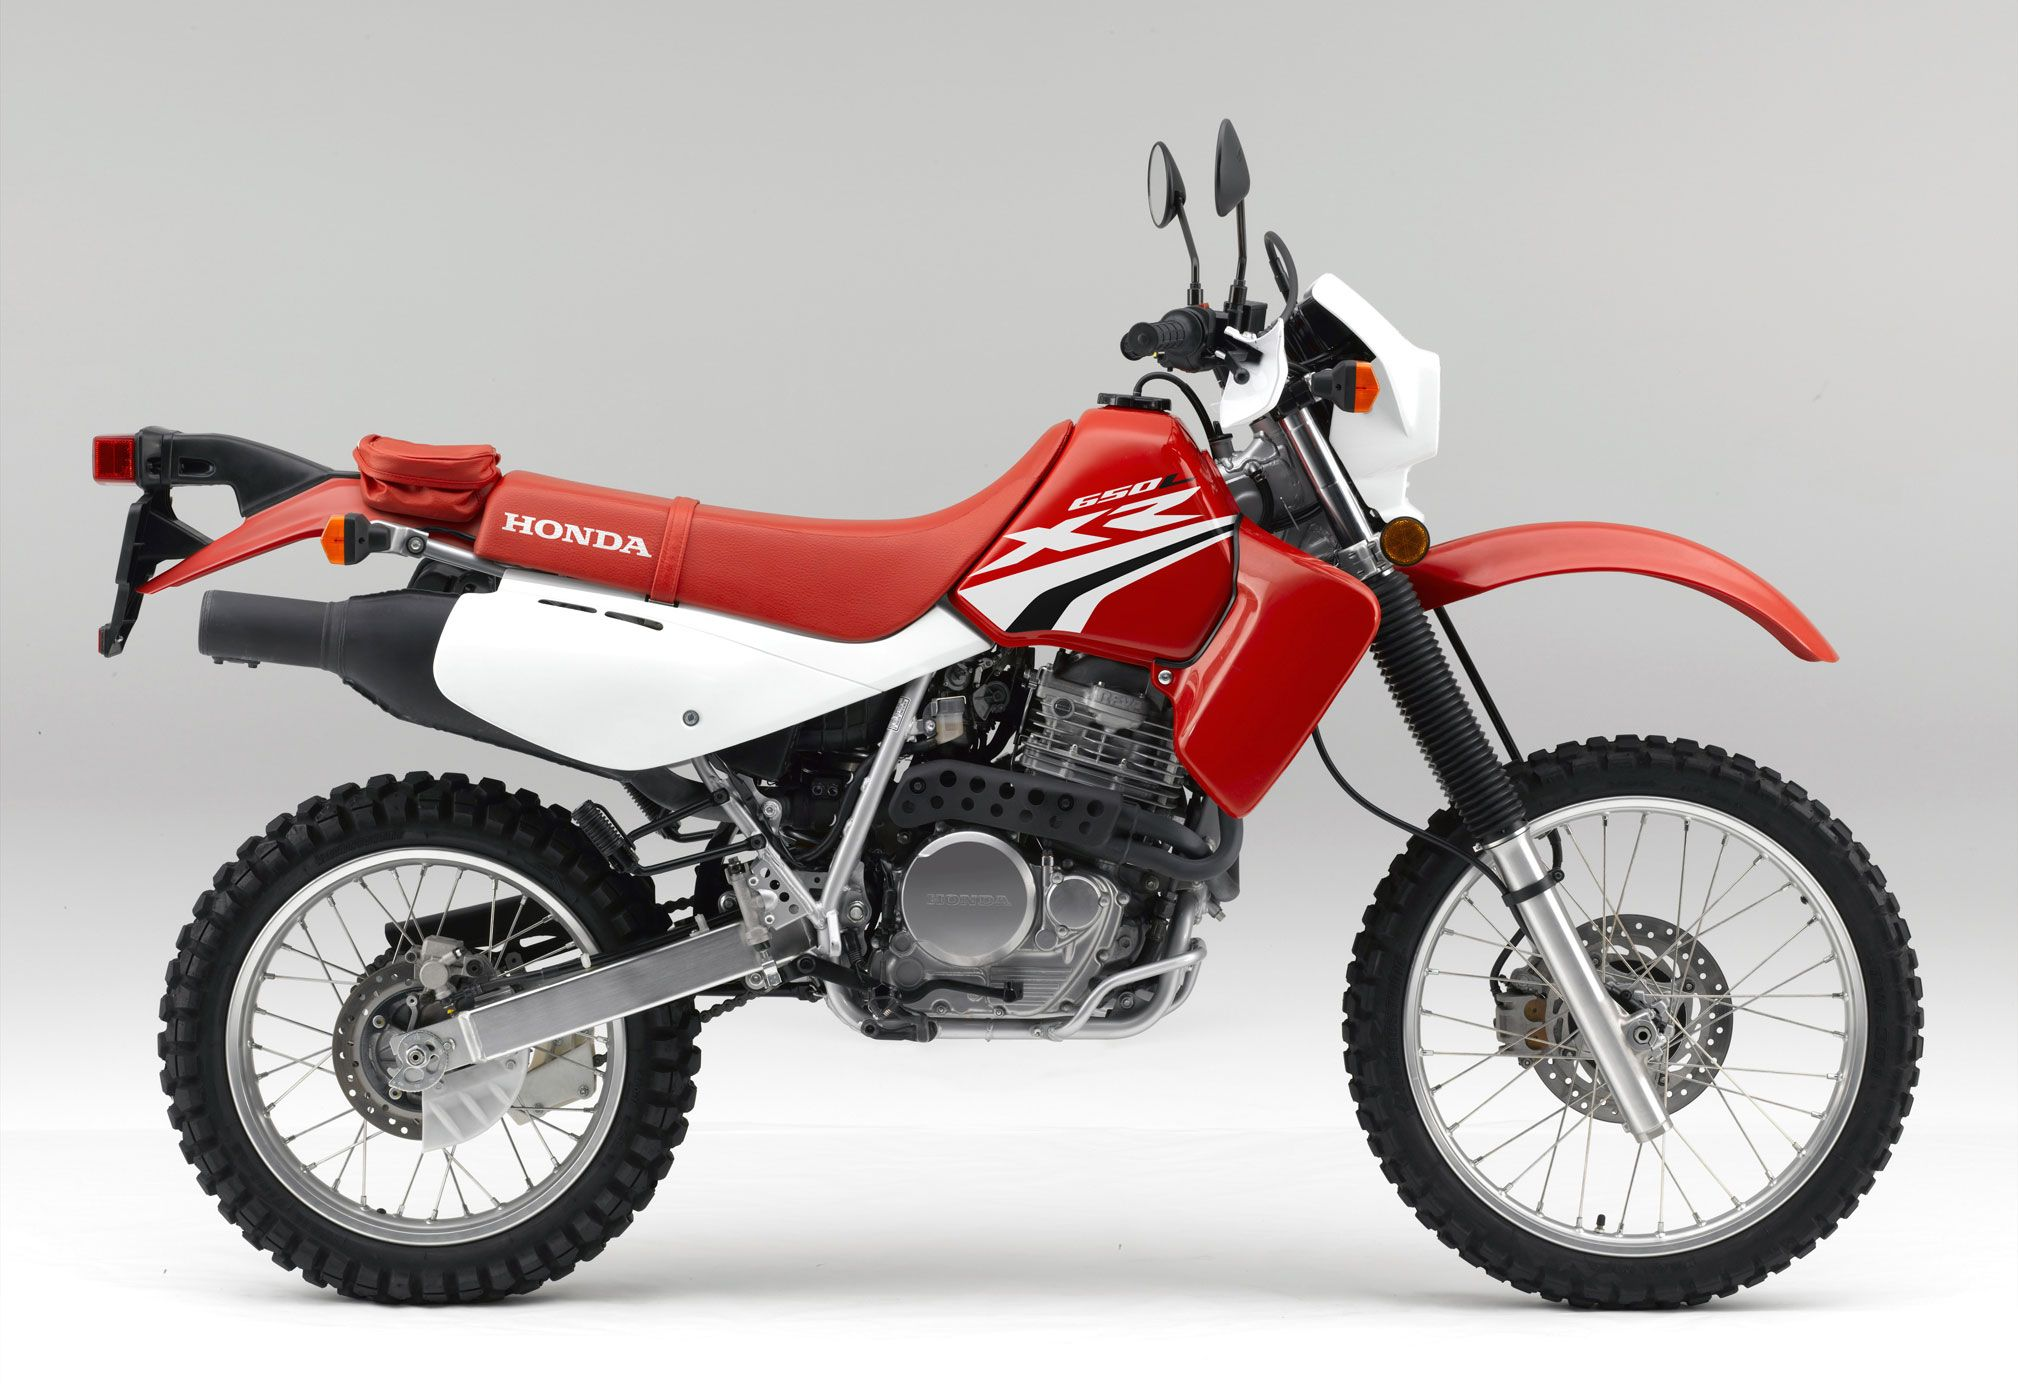 2018 Honda XR650L Review: EXPAND YOUR RIDING HORIZONS. 2018 Honda XR650L…  #2018MotorcycleModels #Motorcycle #2018 #adventure #benefits